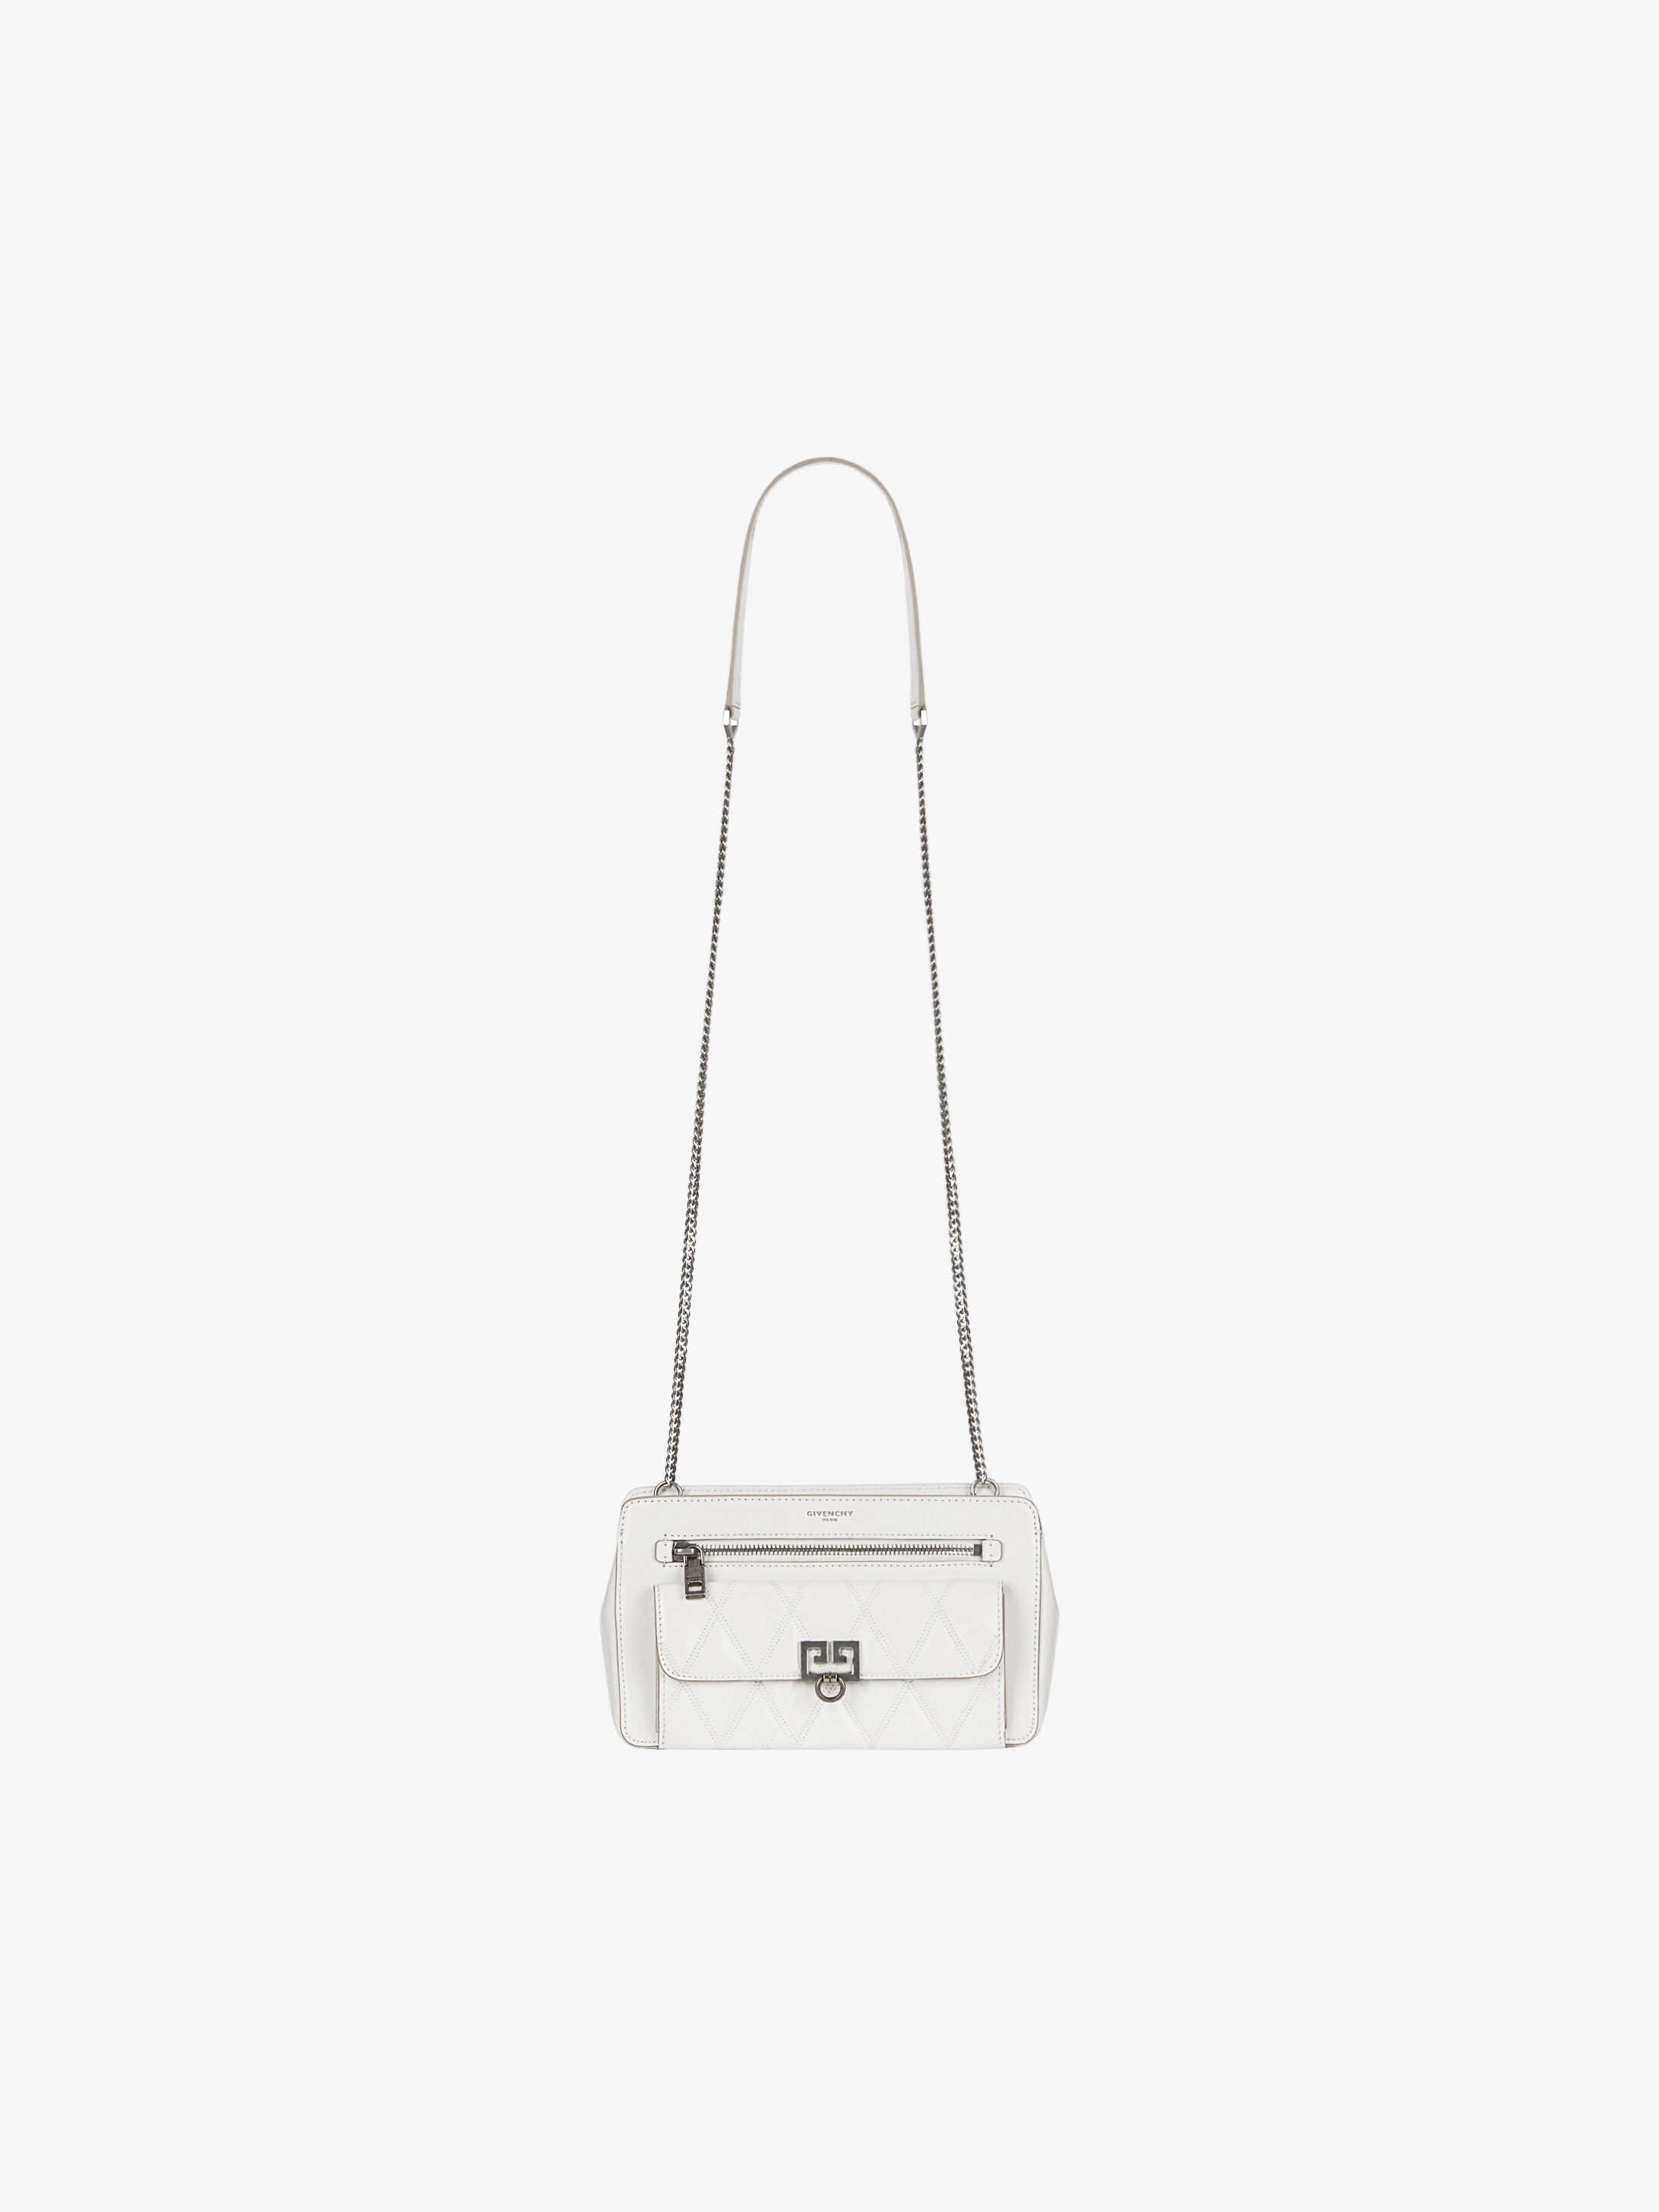 88652951ba9f Women s Cross-body Bags collection by Givenchy.